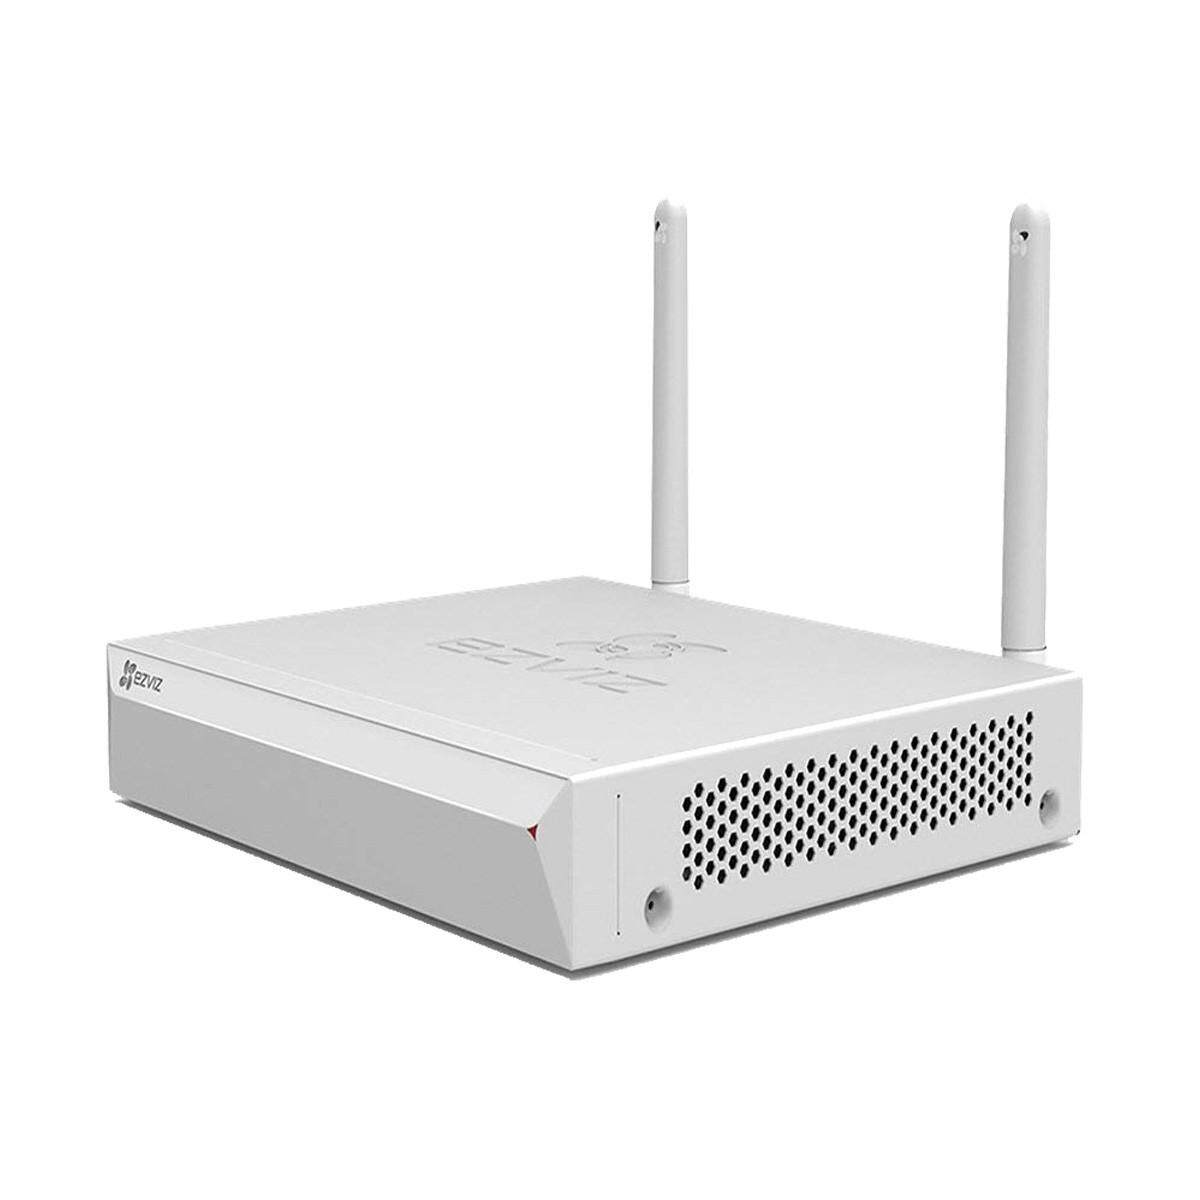 Ezviz X5C-4 Vault Live 4ch 2MP1080p Wireless NVR with HDMI VGA Output ( CS-X5C-4APEC )